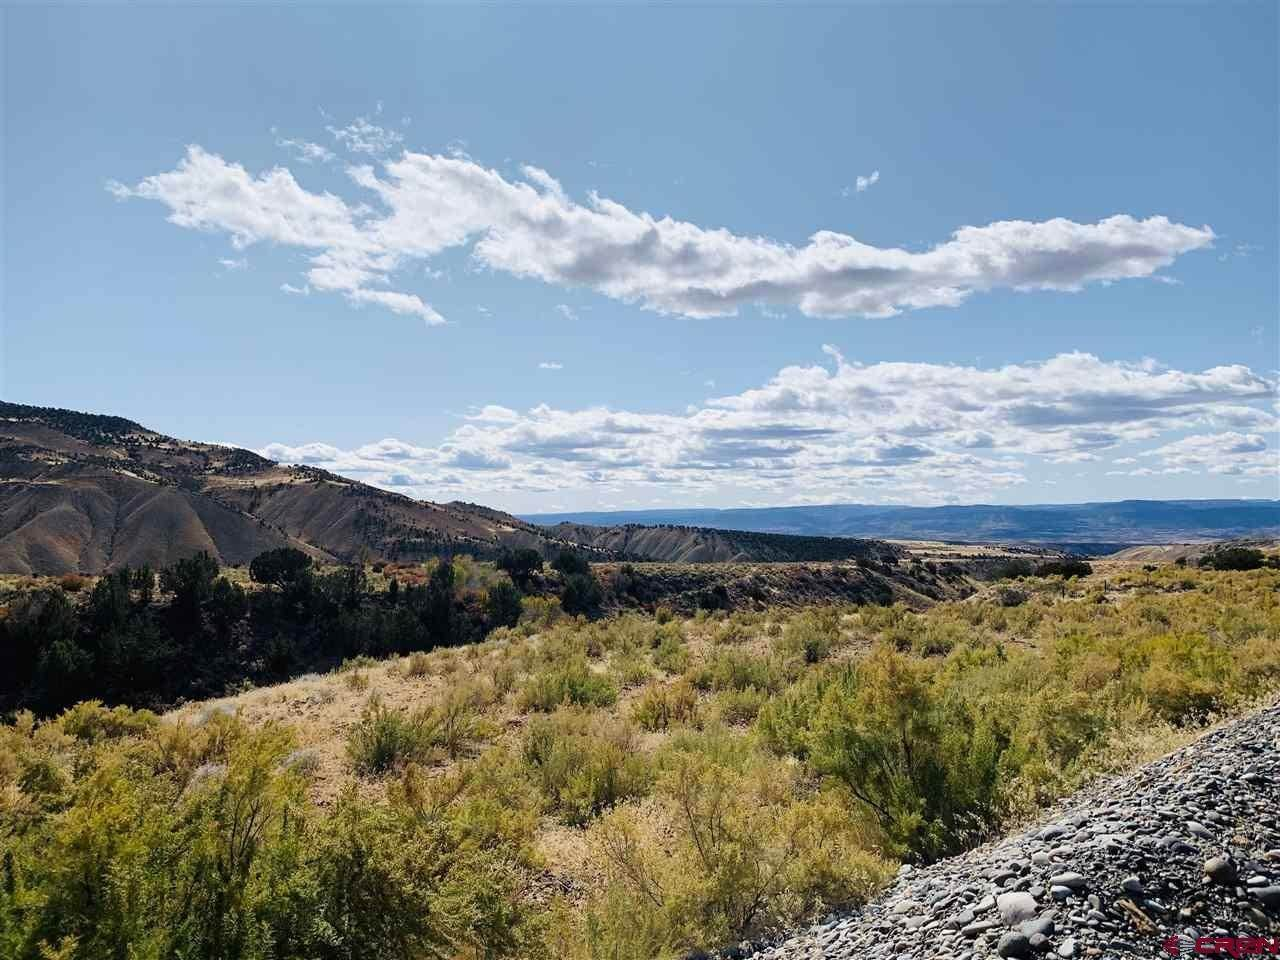 Agricultural Land for Sale at 5331 Purdy Mesa Road Whitewater, Colorado 81527 United States